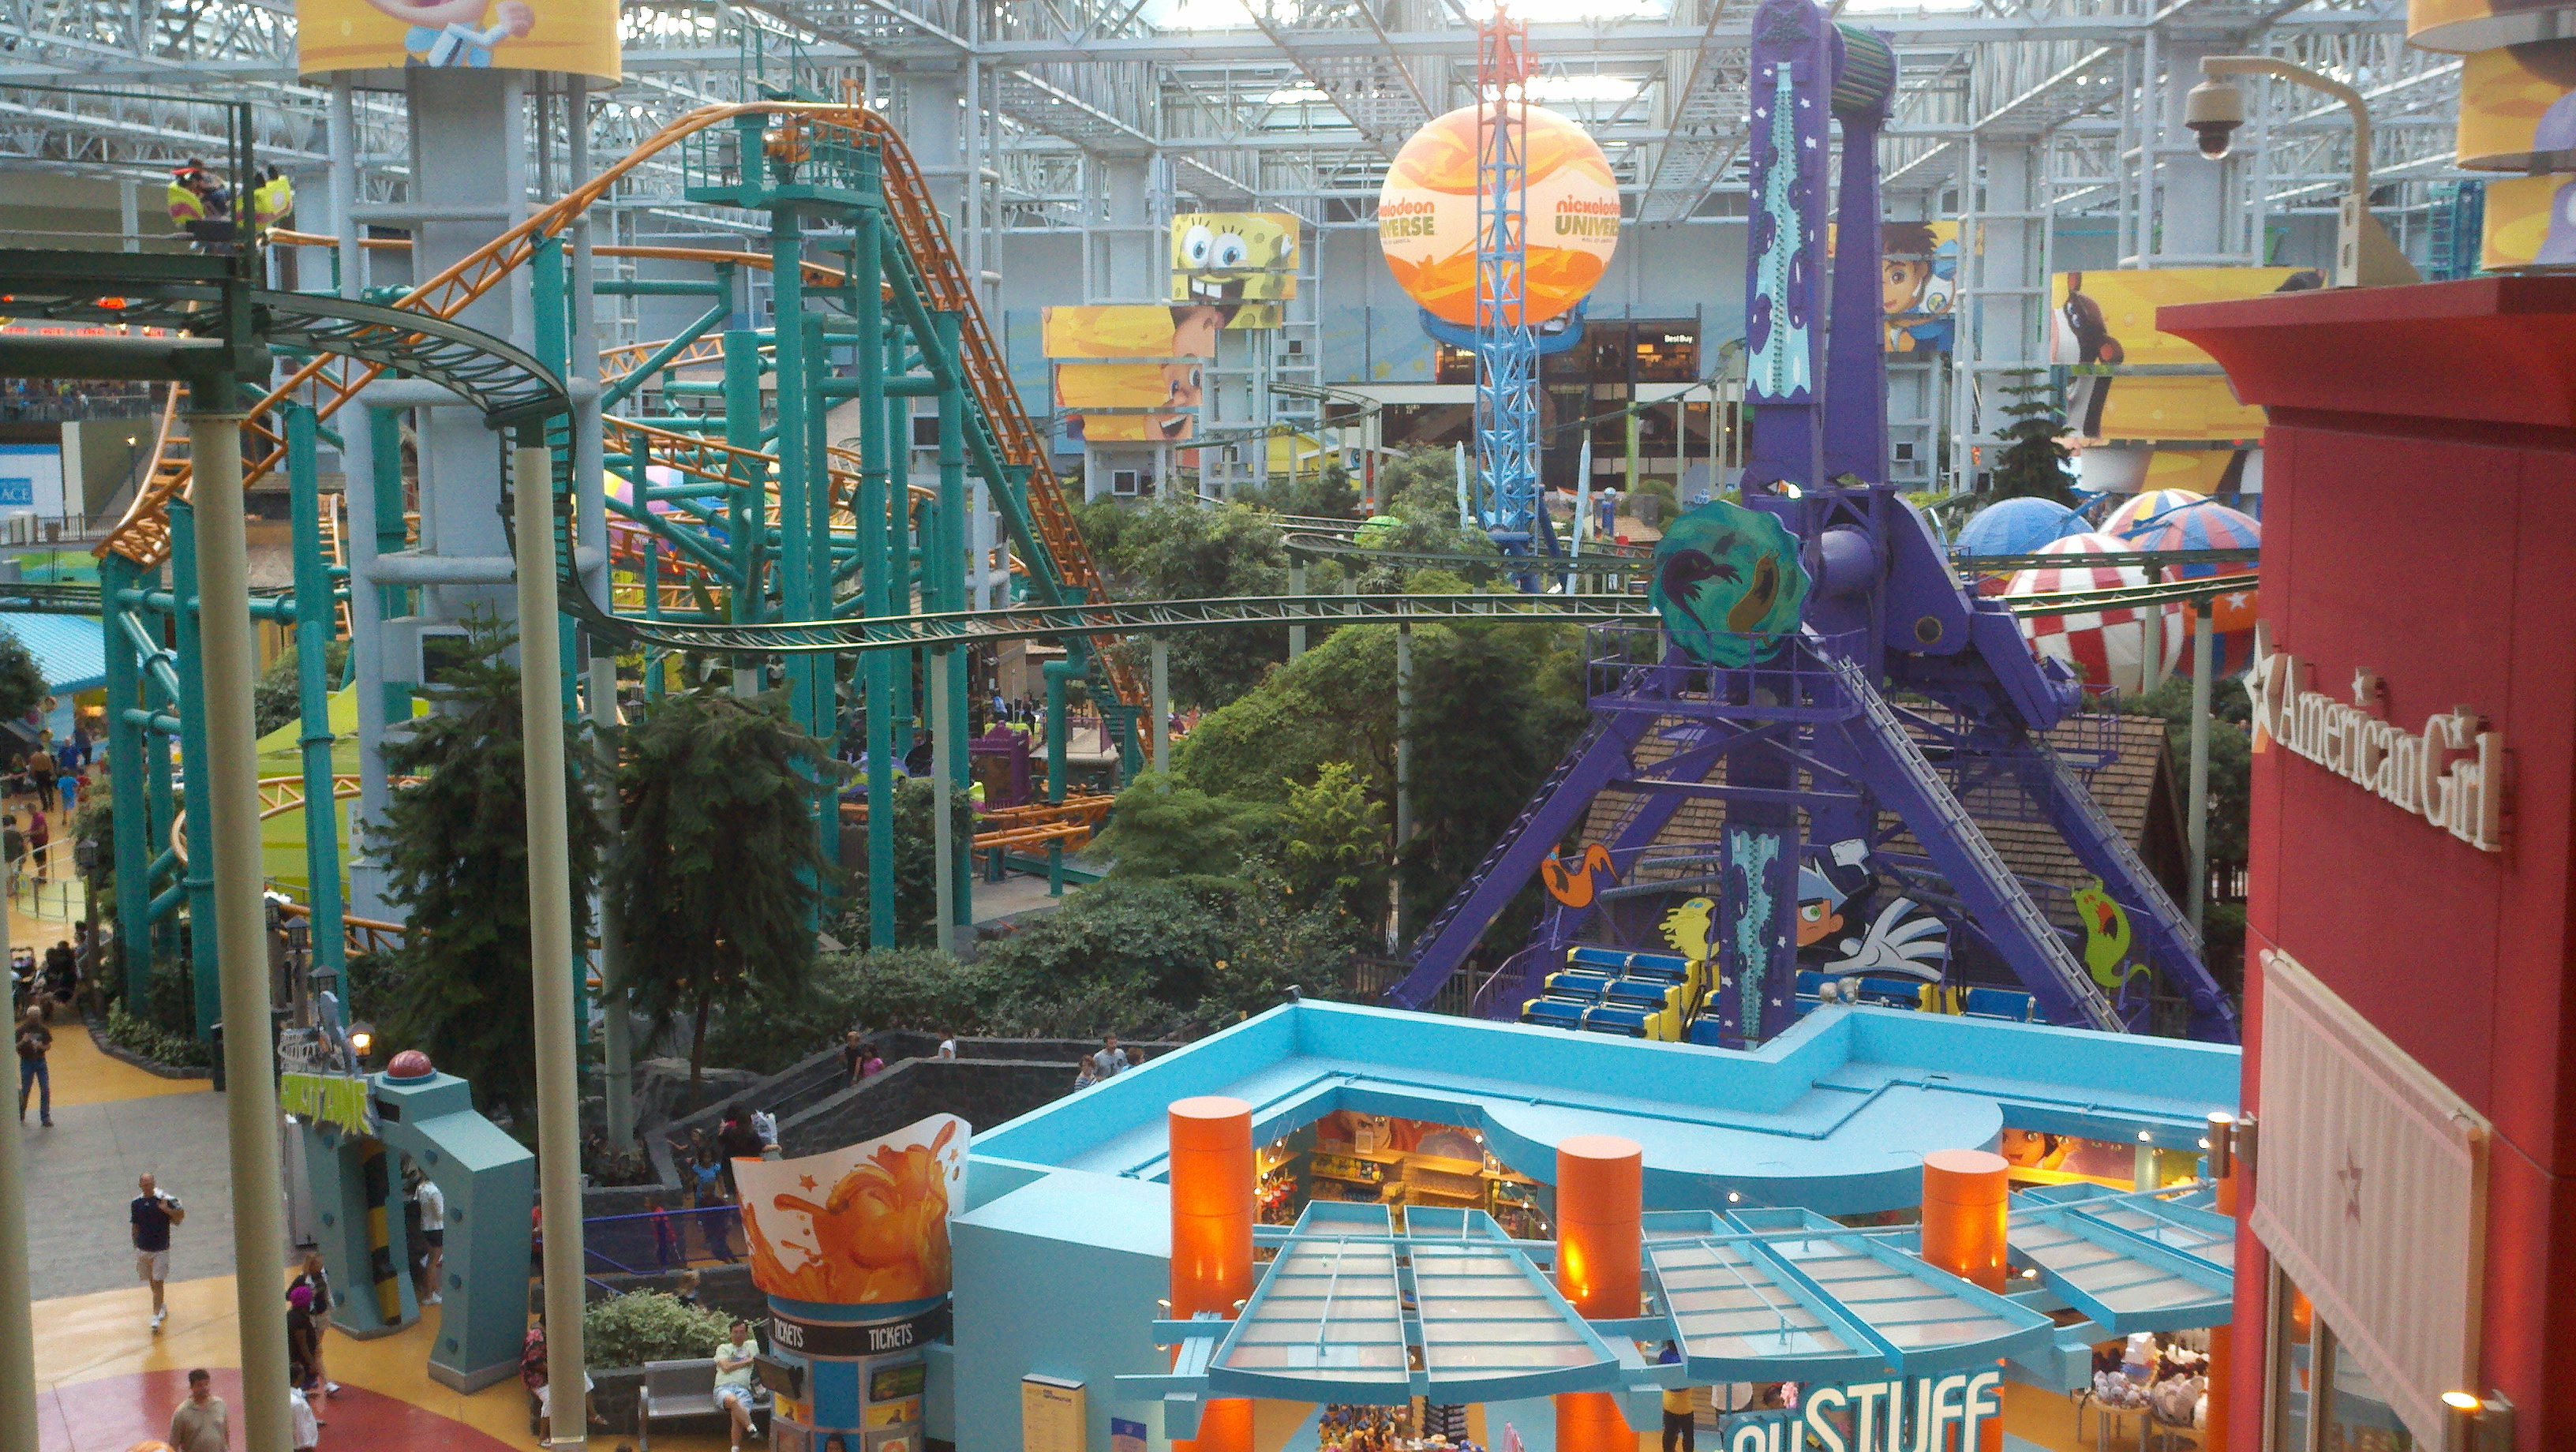 Mall Of America - Shopping Mall In Minneapolis